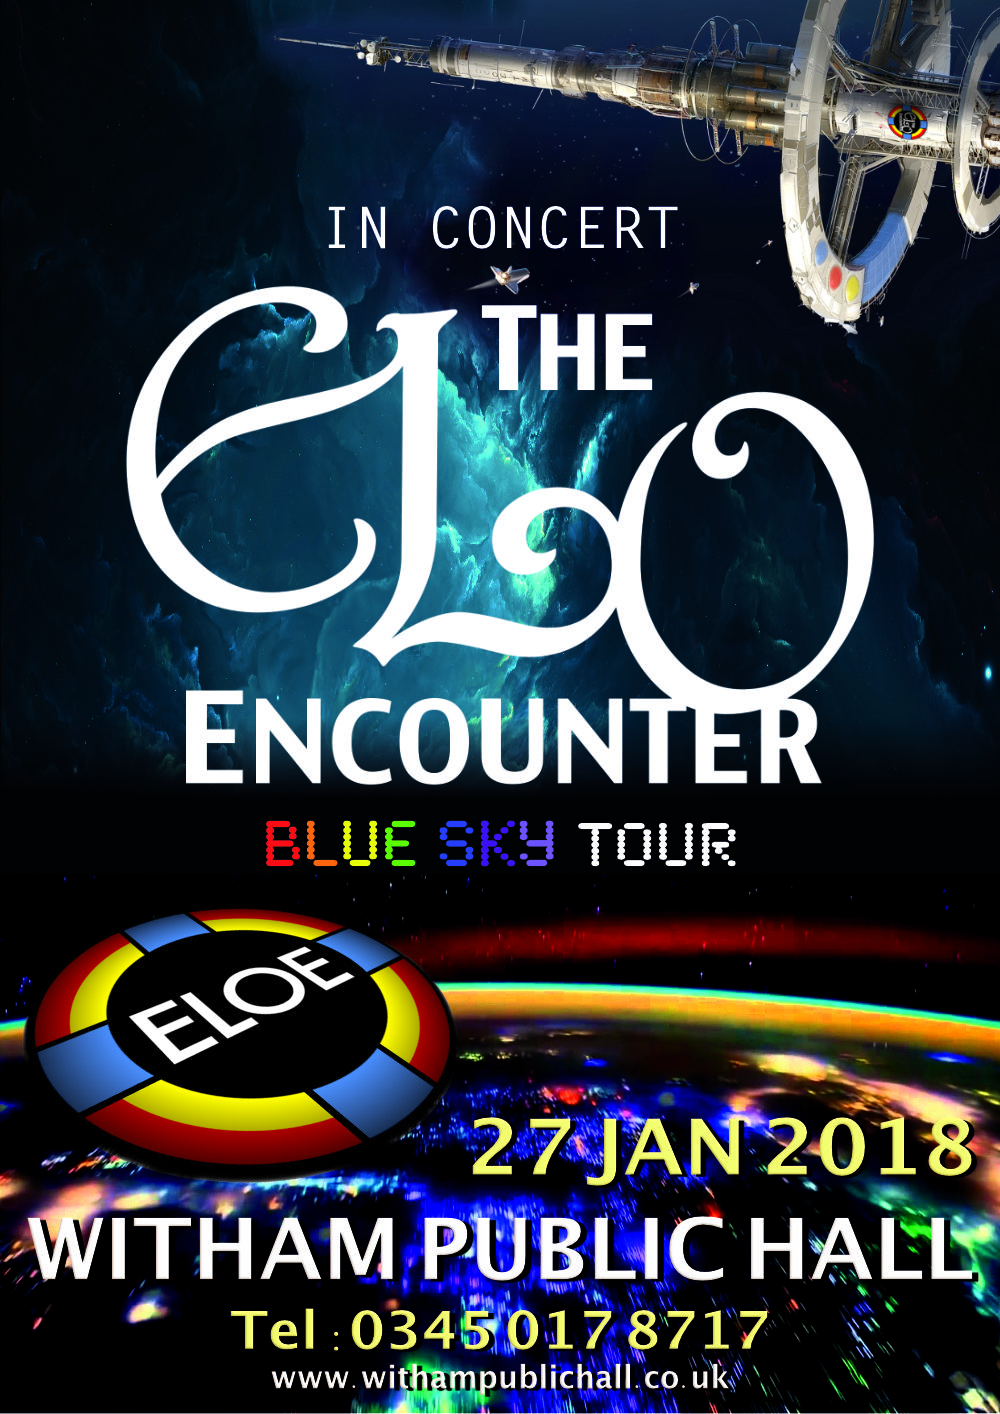 Witham Public Hall 2018 - ELO Encounter Poster